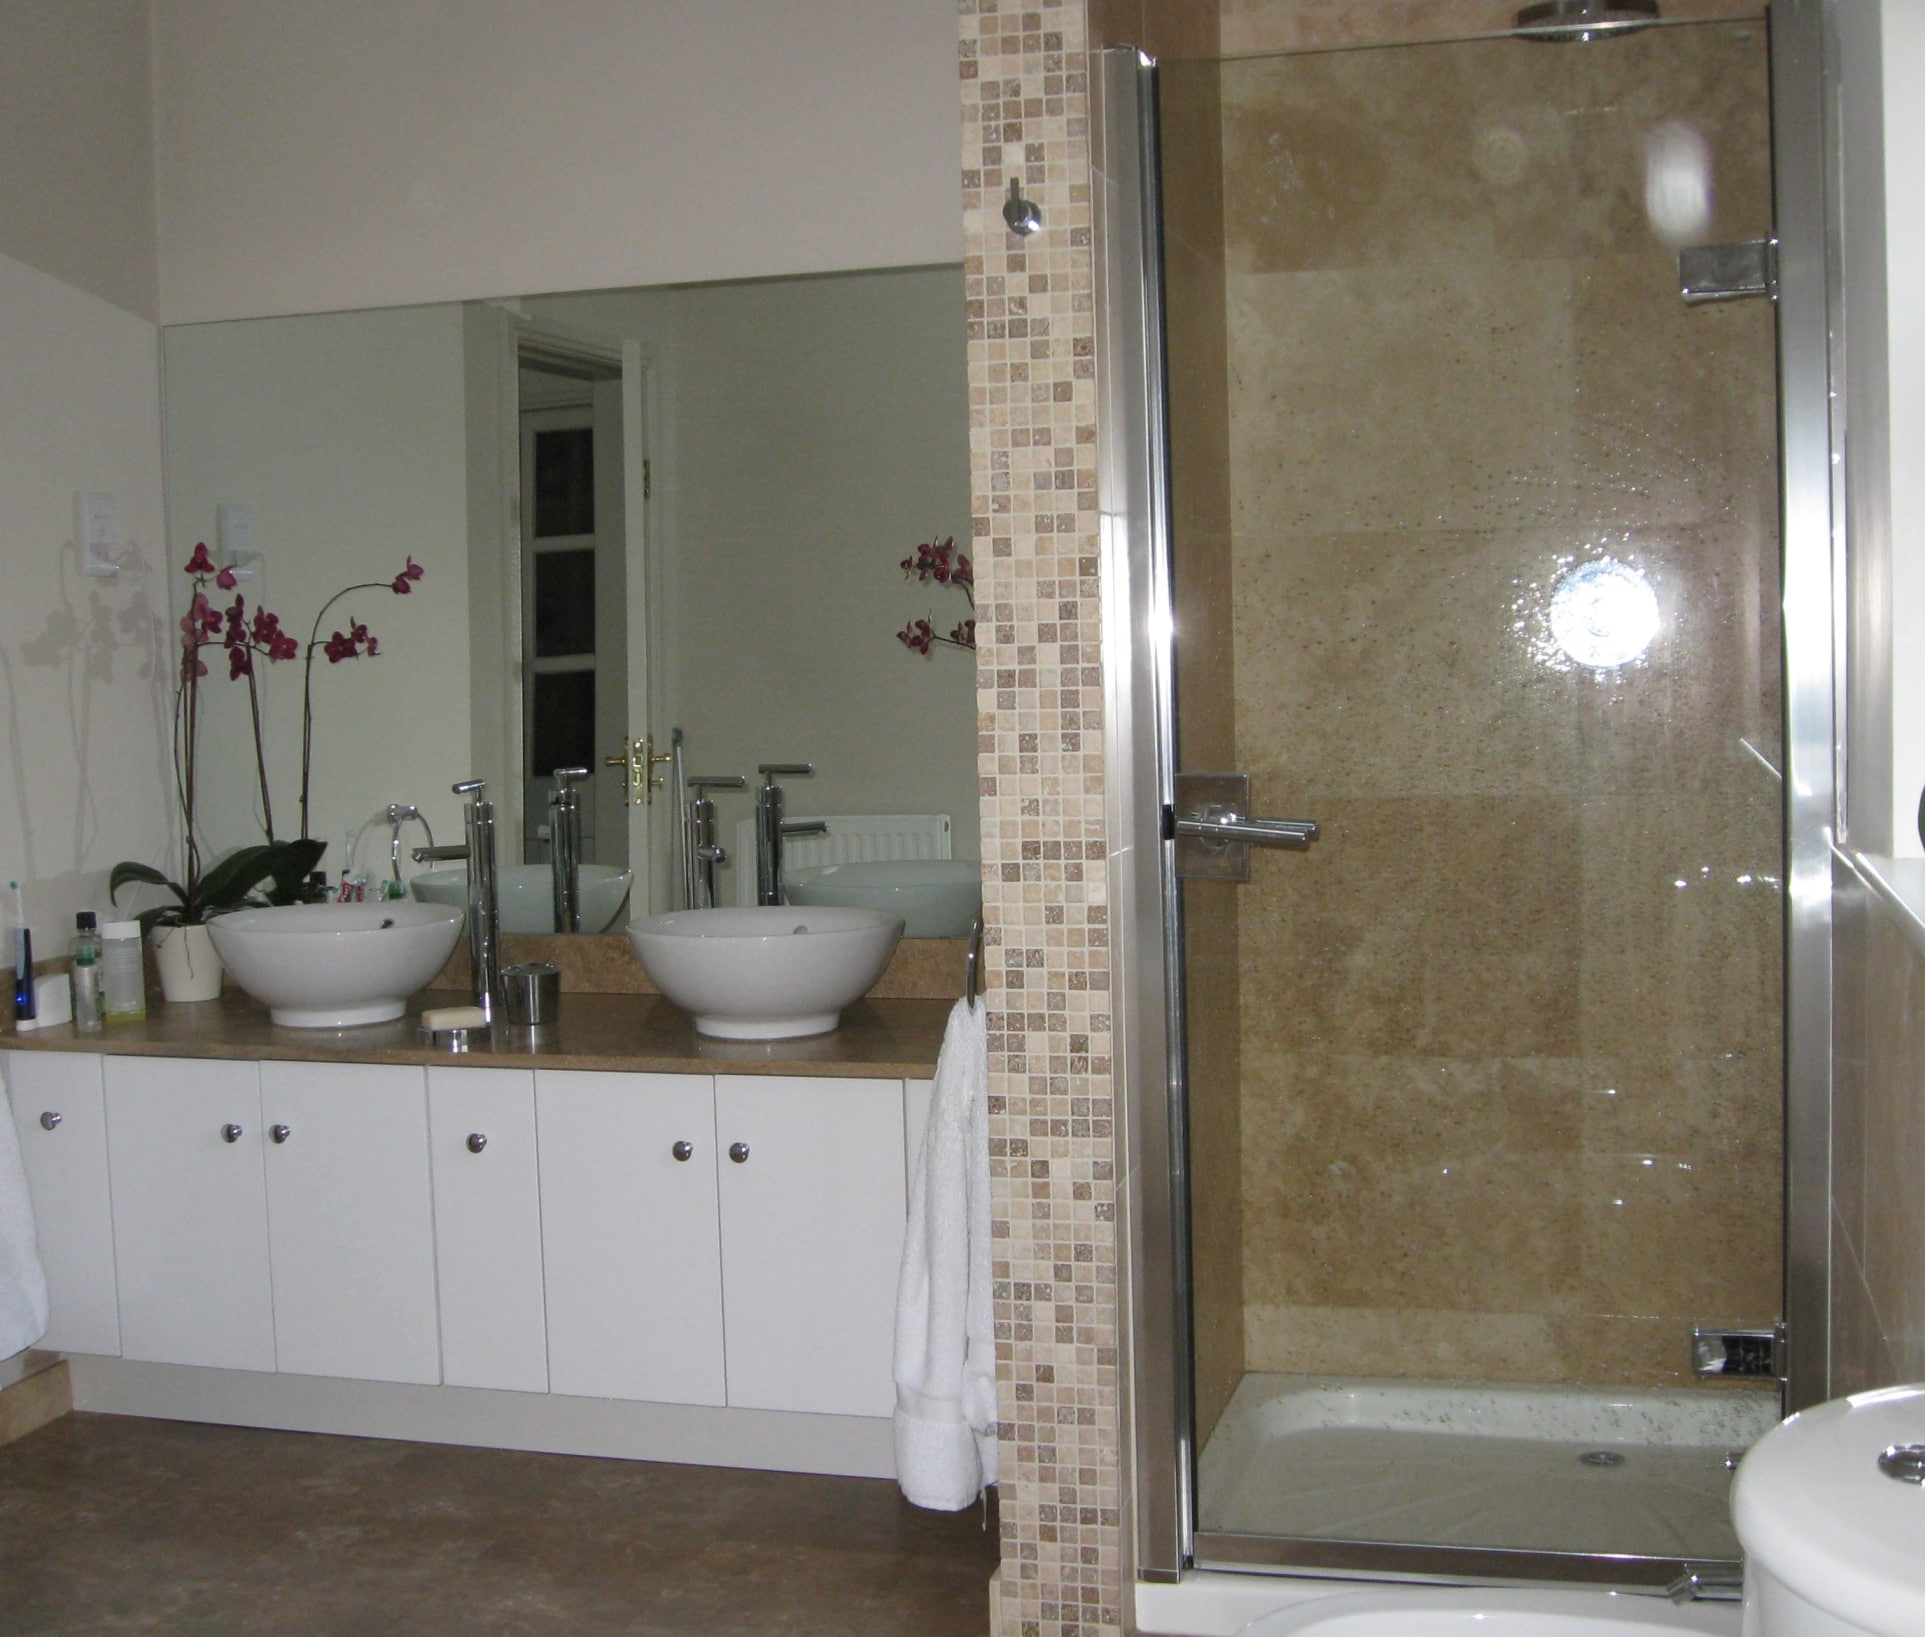 Lymm Master Suite Bathroom Transforming Homes For Over 30 Years Expert Builders Quality